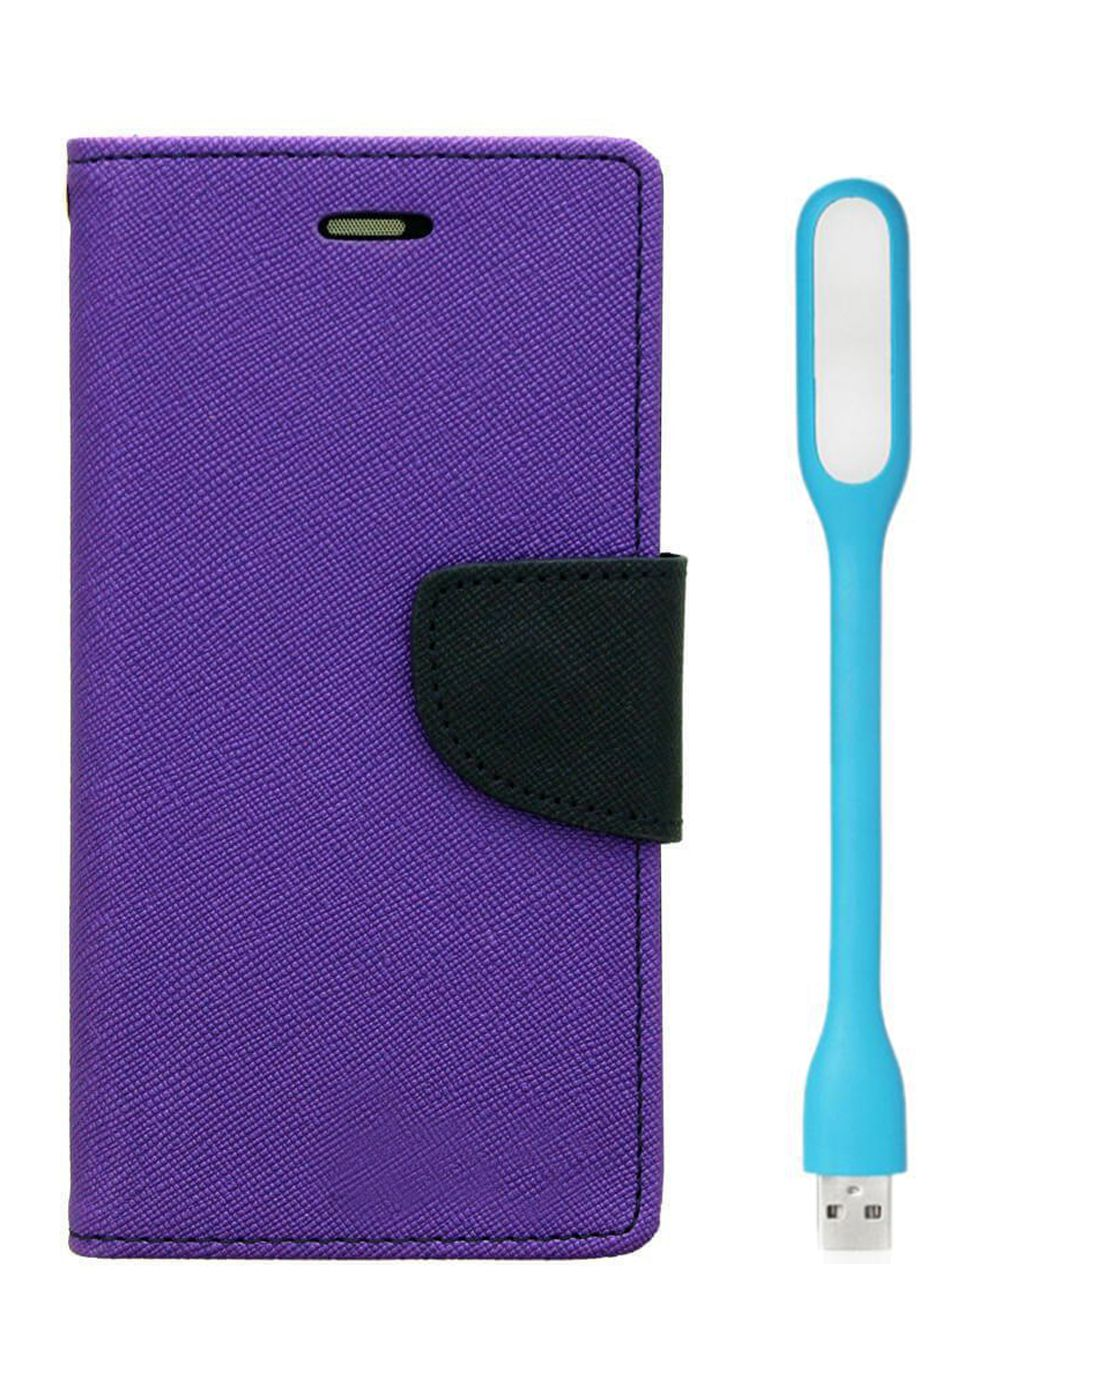 Wallet Flip Case Back Cover For Micromax A116 - (Purple) + Flexible Mini LED Stick Lamp Light By Style Crome